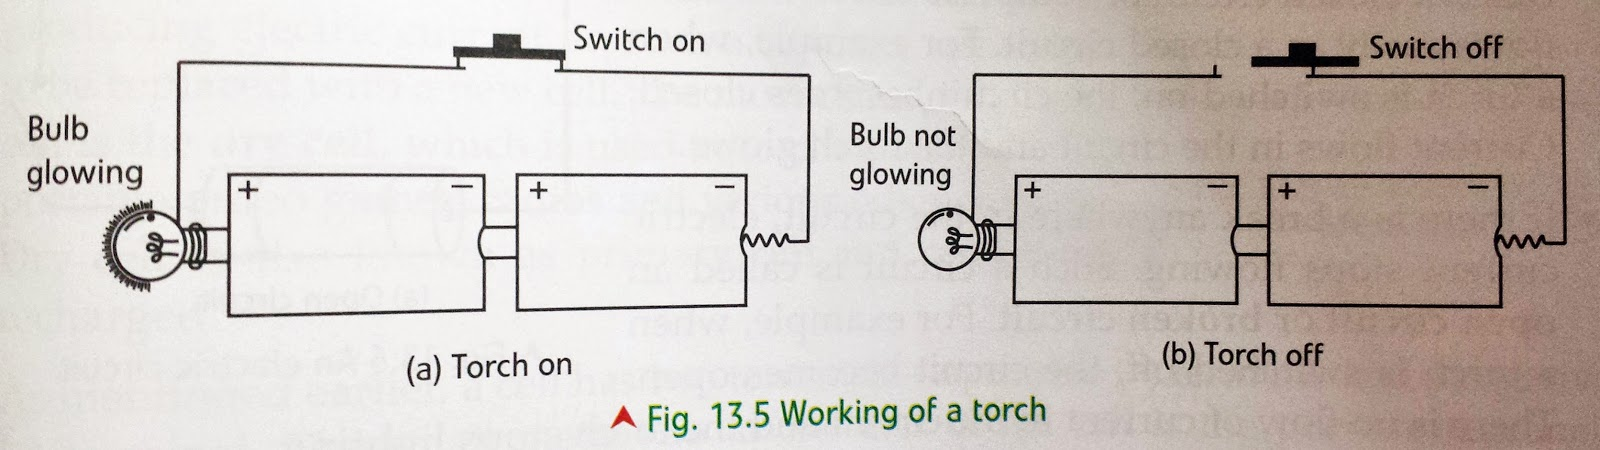 Science@DPSkamal: NOTES, Gr6 - Electricity and Circuits on schematic for pump, schematic for transformer, schematic for furnace, schematic for cable, schematic for lamps, schematic for parts, schematic for air conditioning, schematic for electrical, schematic for heater, schematic for fittings, schematic for power supply, schematic for solenoid, schematic for speakers, schematic for fuse, schematic for building, schematic for alternator, schematic for battery, schematic for relay, schematic for engine, schematic for clutch,